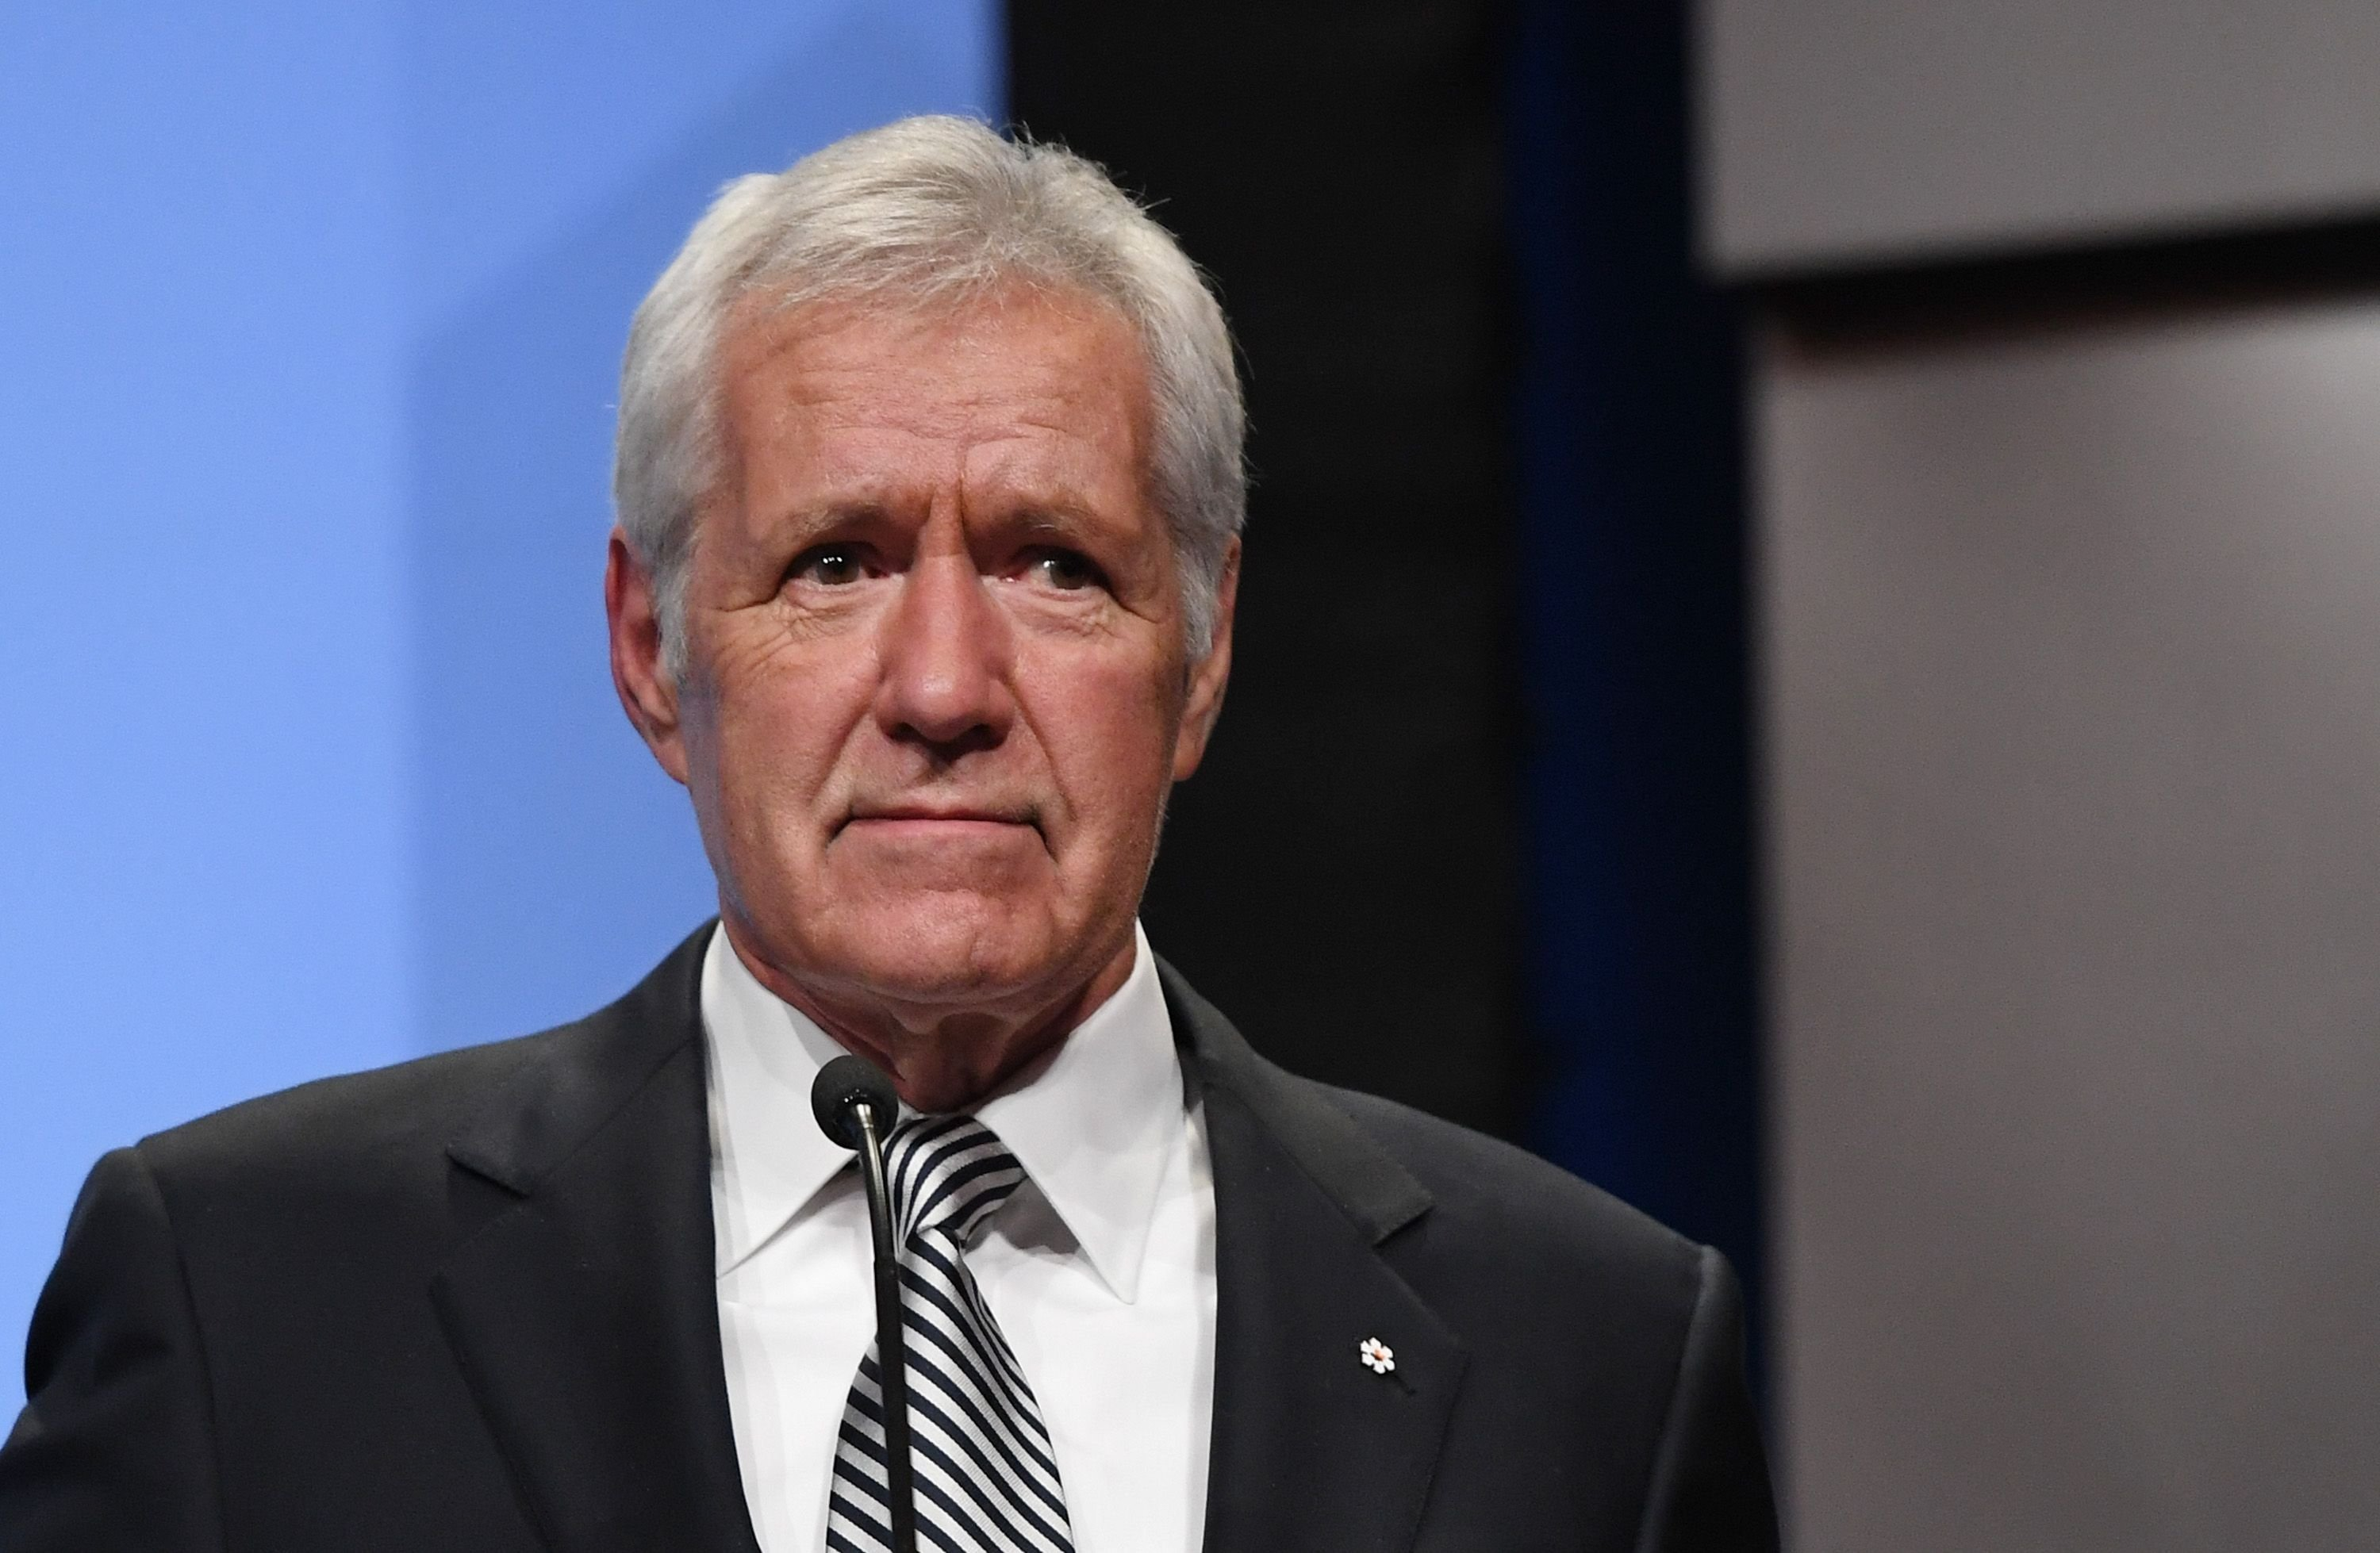 Alex Trebek at his induction into the National Association of Broadcasters Broadcasting Hall of Fame at Encore Las Vegas on April 9, 2018 | Photo: Getty Images